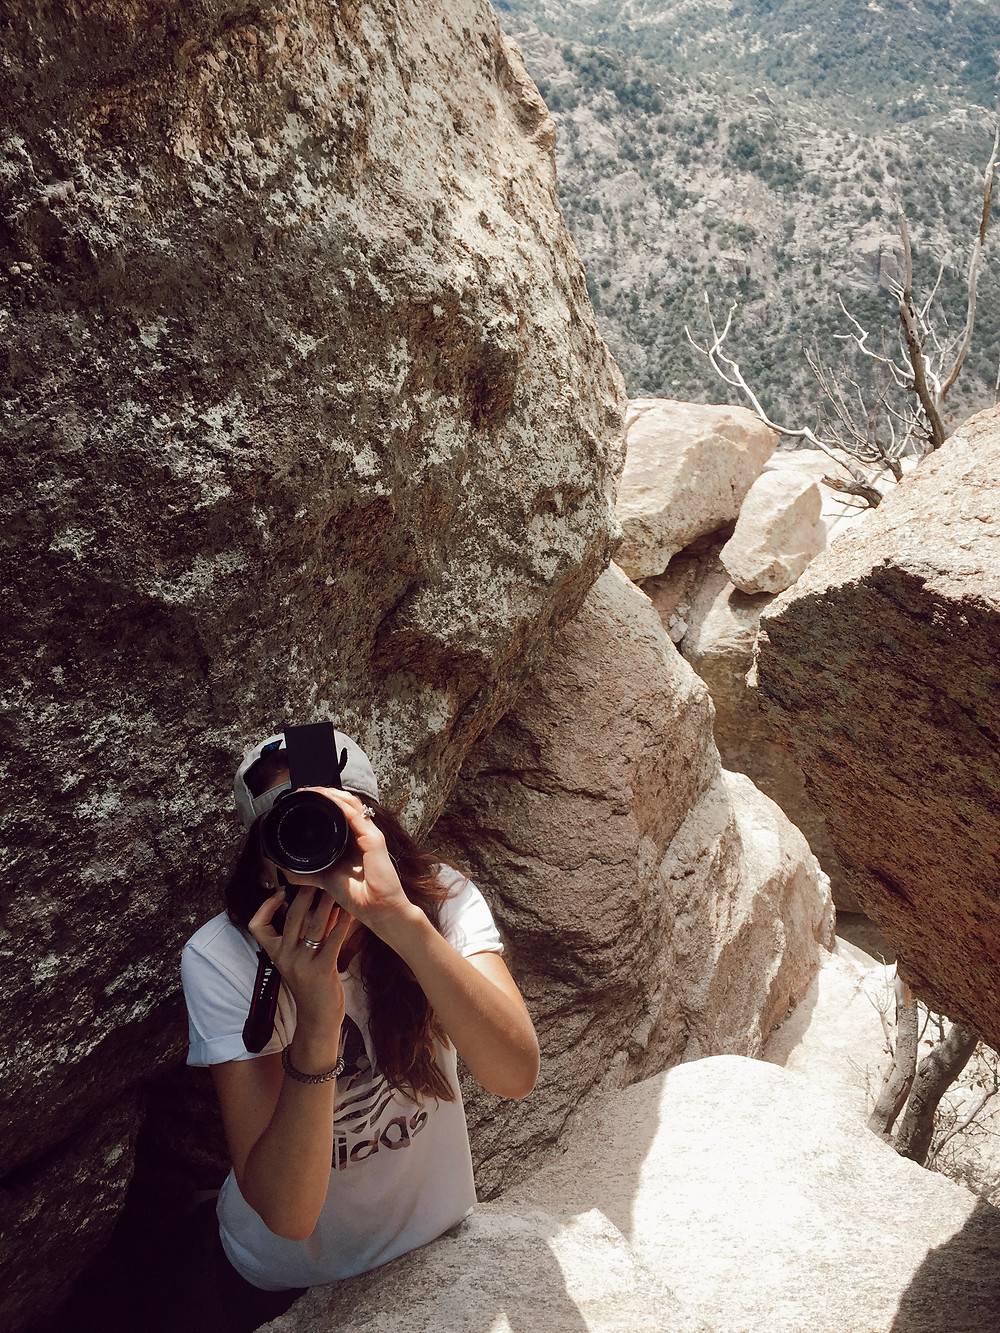 Hiding between the rocks on Mt Lemmon taking photos